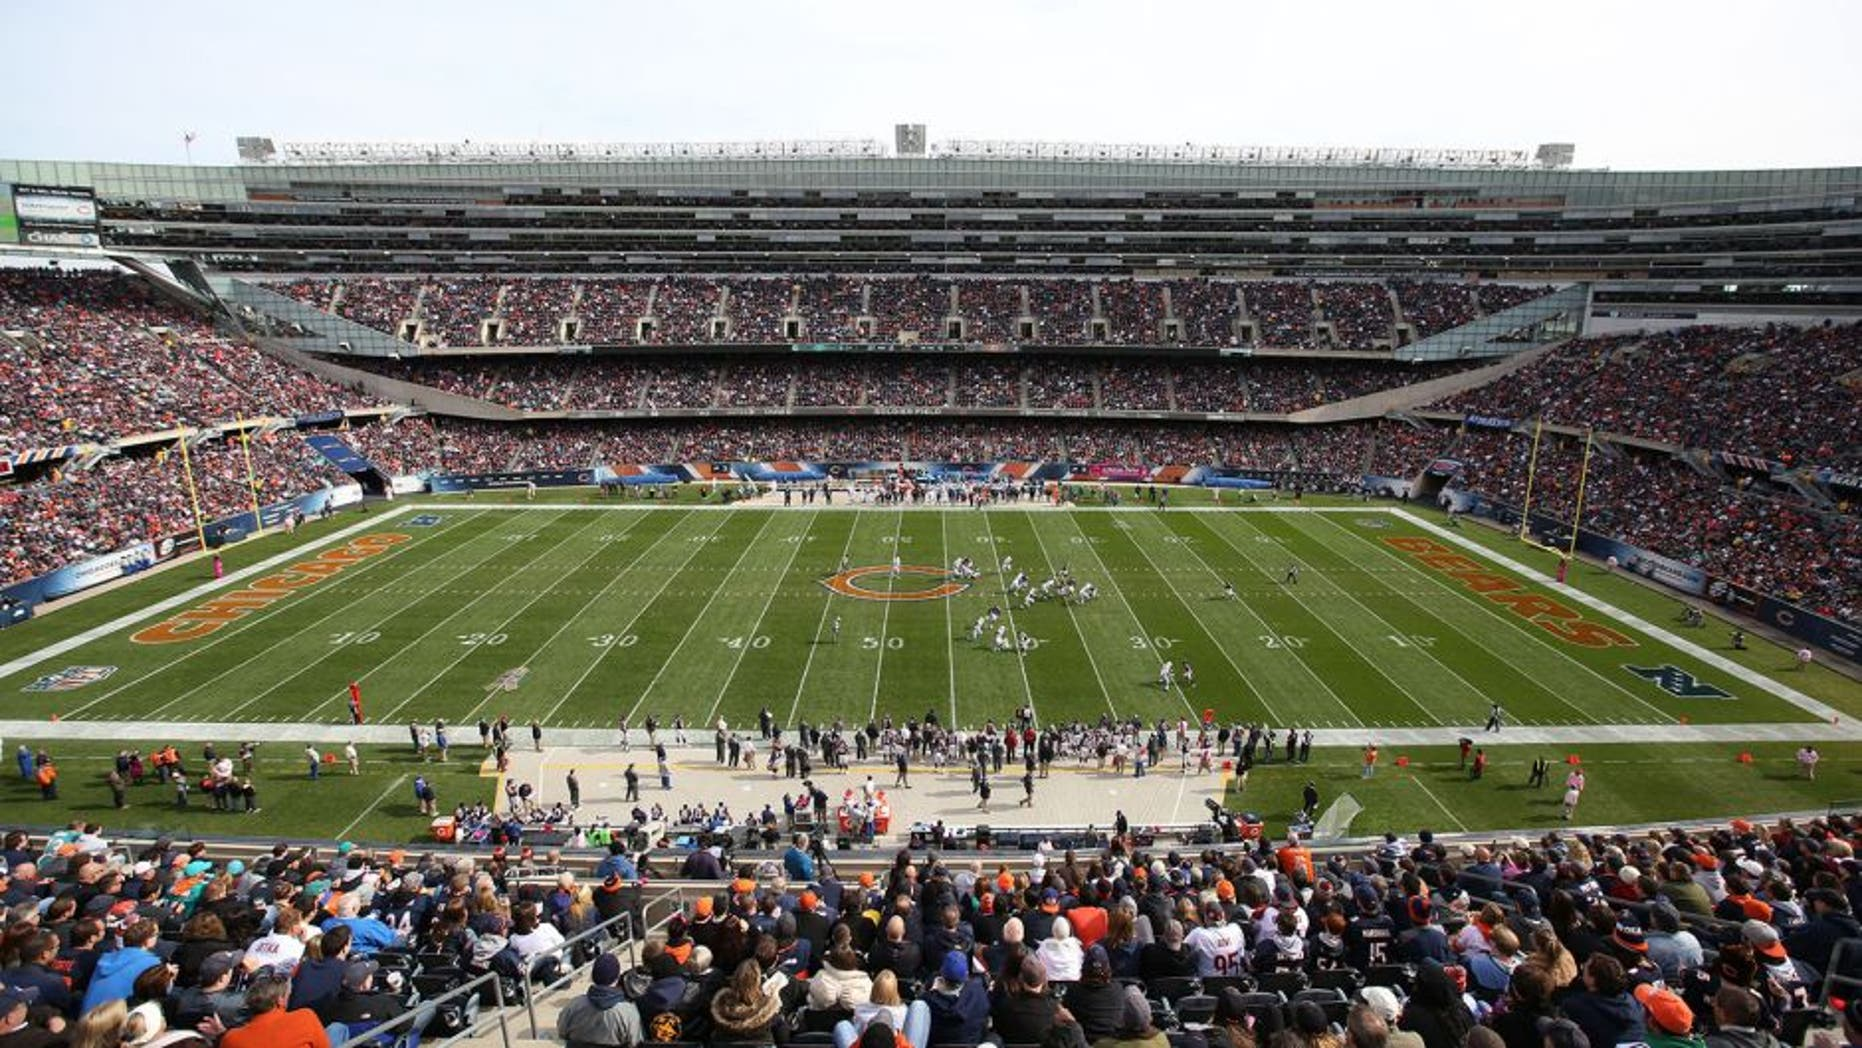 CHICAGO, IL - OCTOBER 19: A general view of Soldier Field as the Chicago Bears play the Miami Dolphins on October 19, 2014 in Chicago, Illinois. The Dolphins defeated the Bears 27-14. (Photo by John Konstantaras/Getty Images)